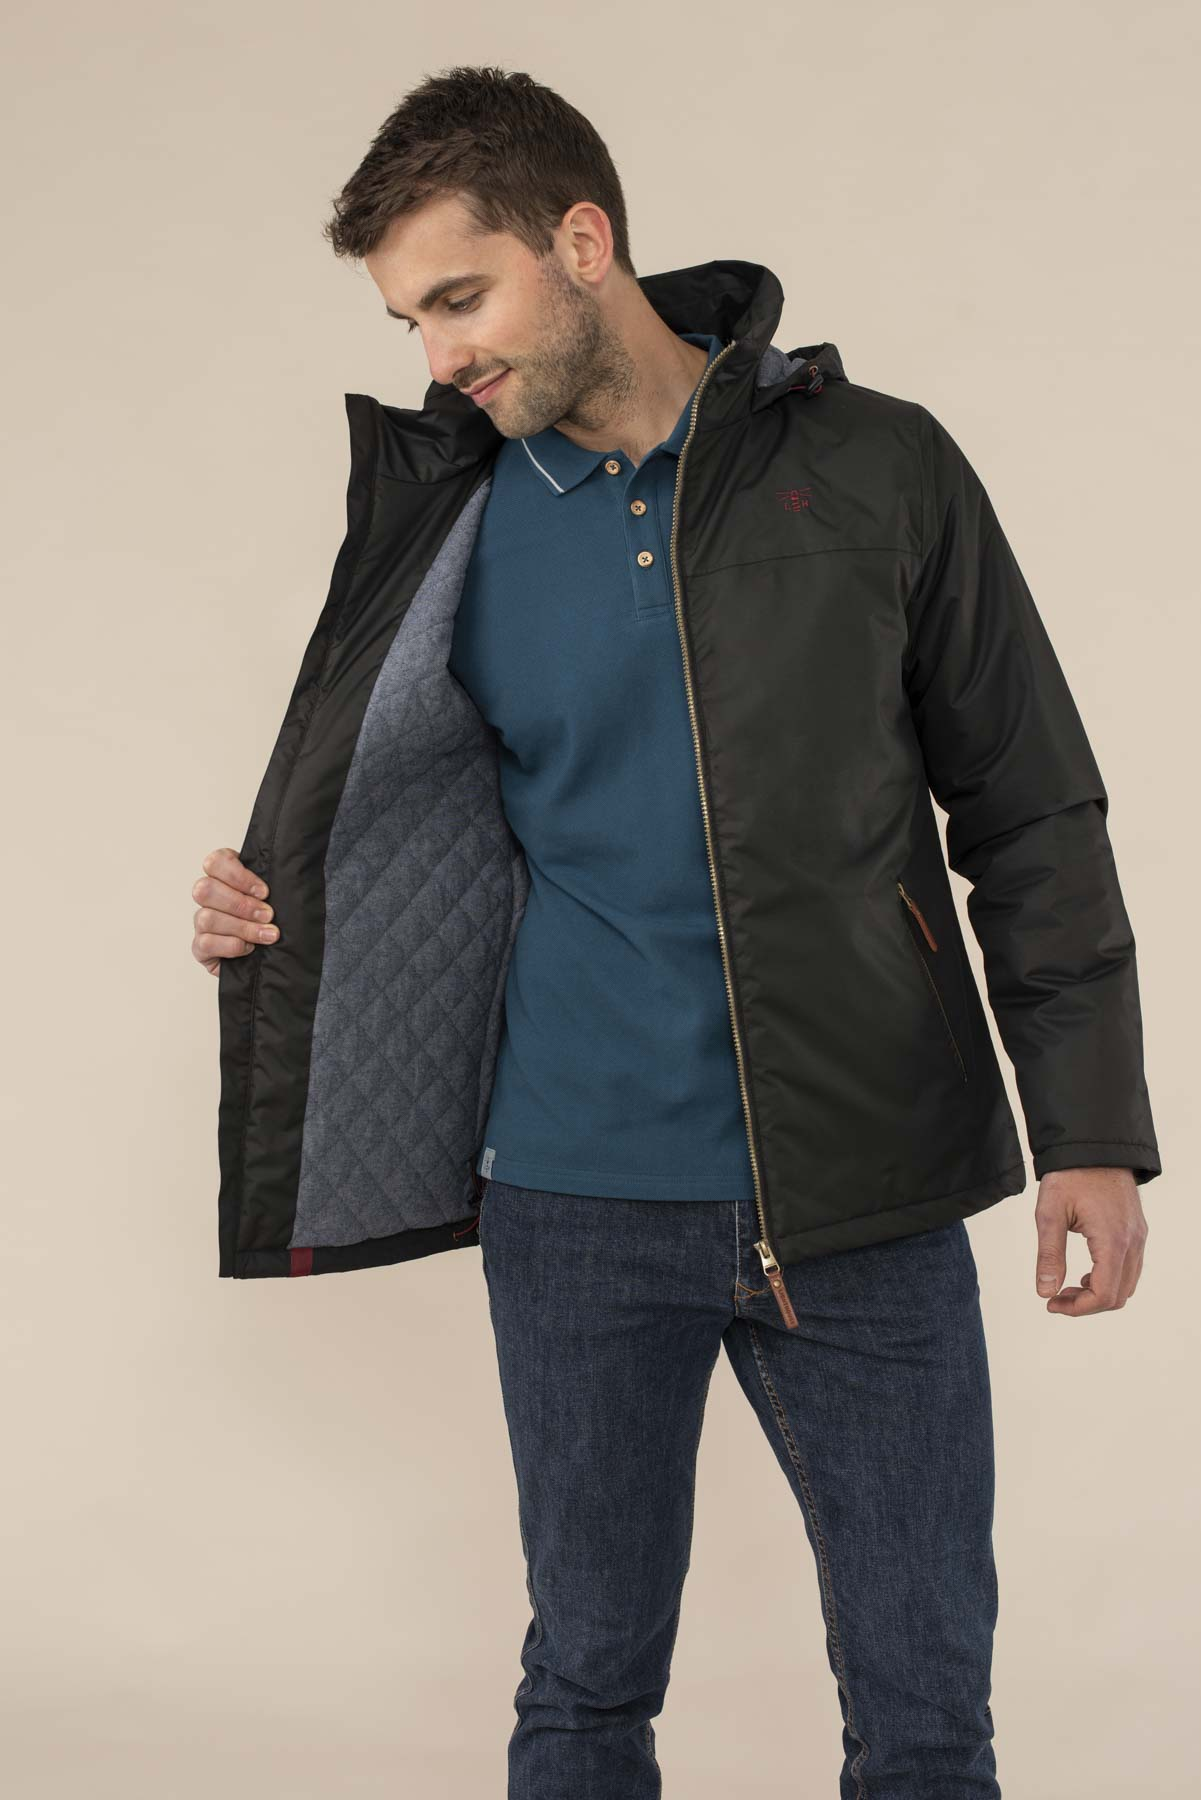 Harbour Coat - Black. Men's Warm Padded Waterproof Coat | Lighthouse